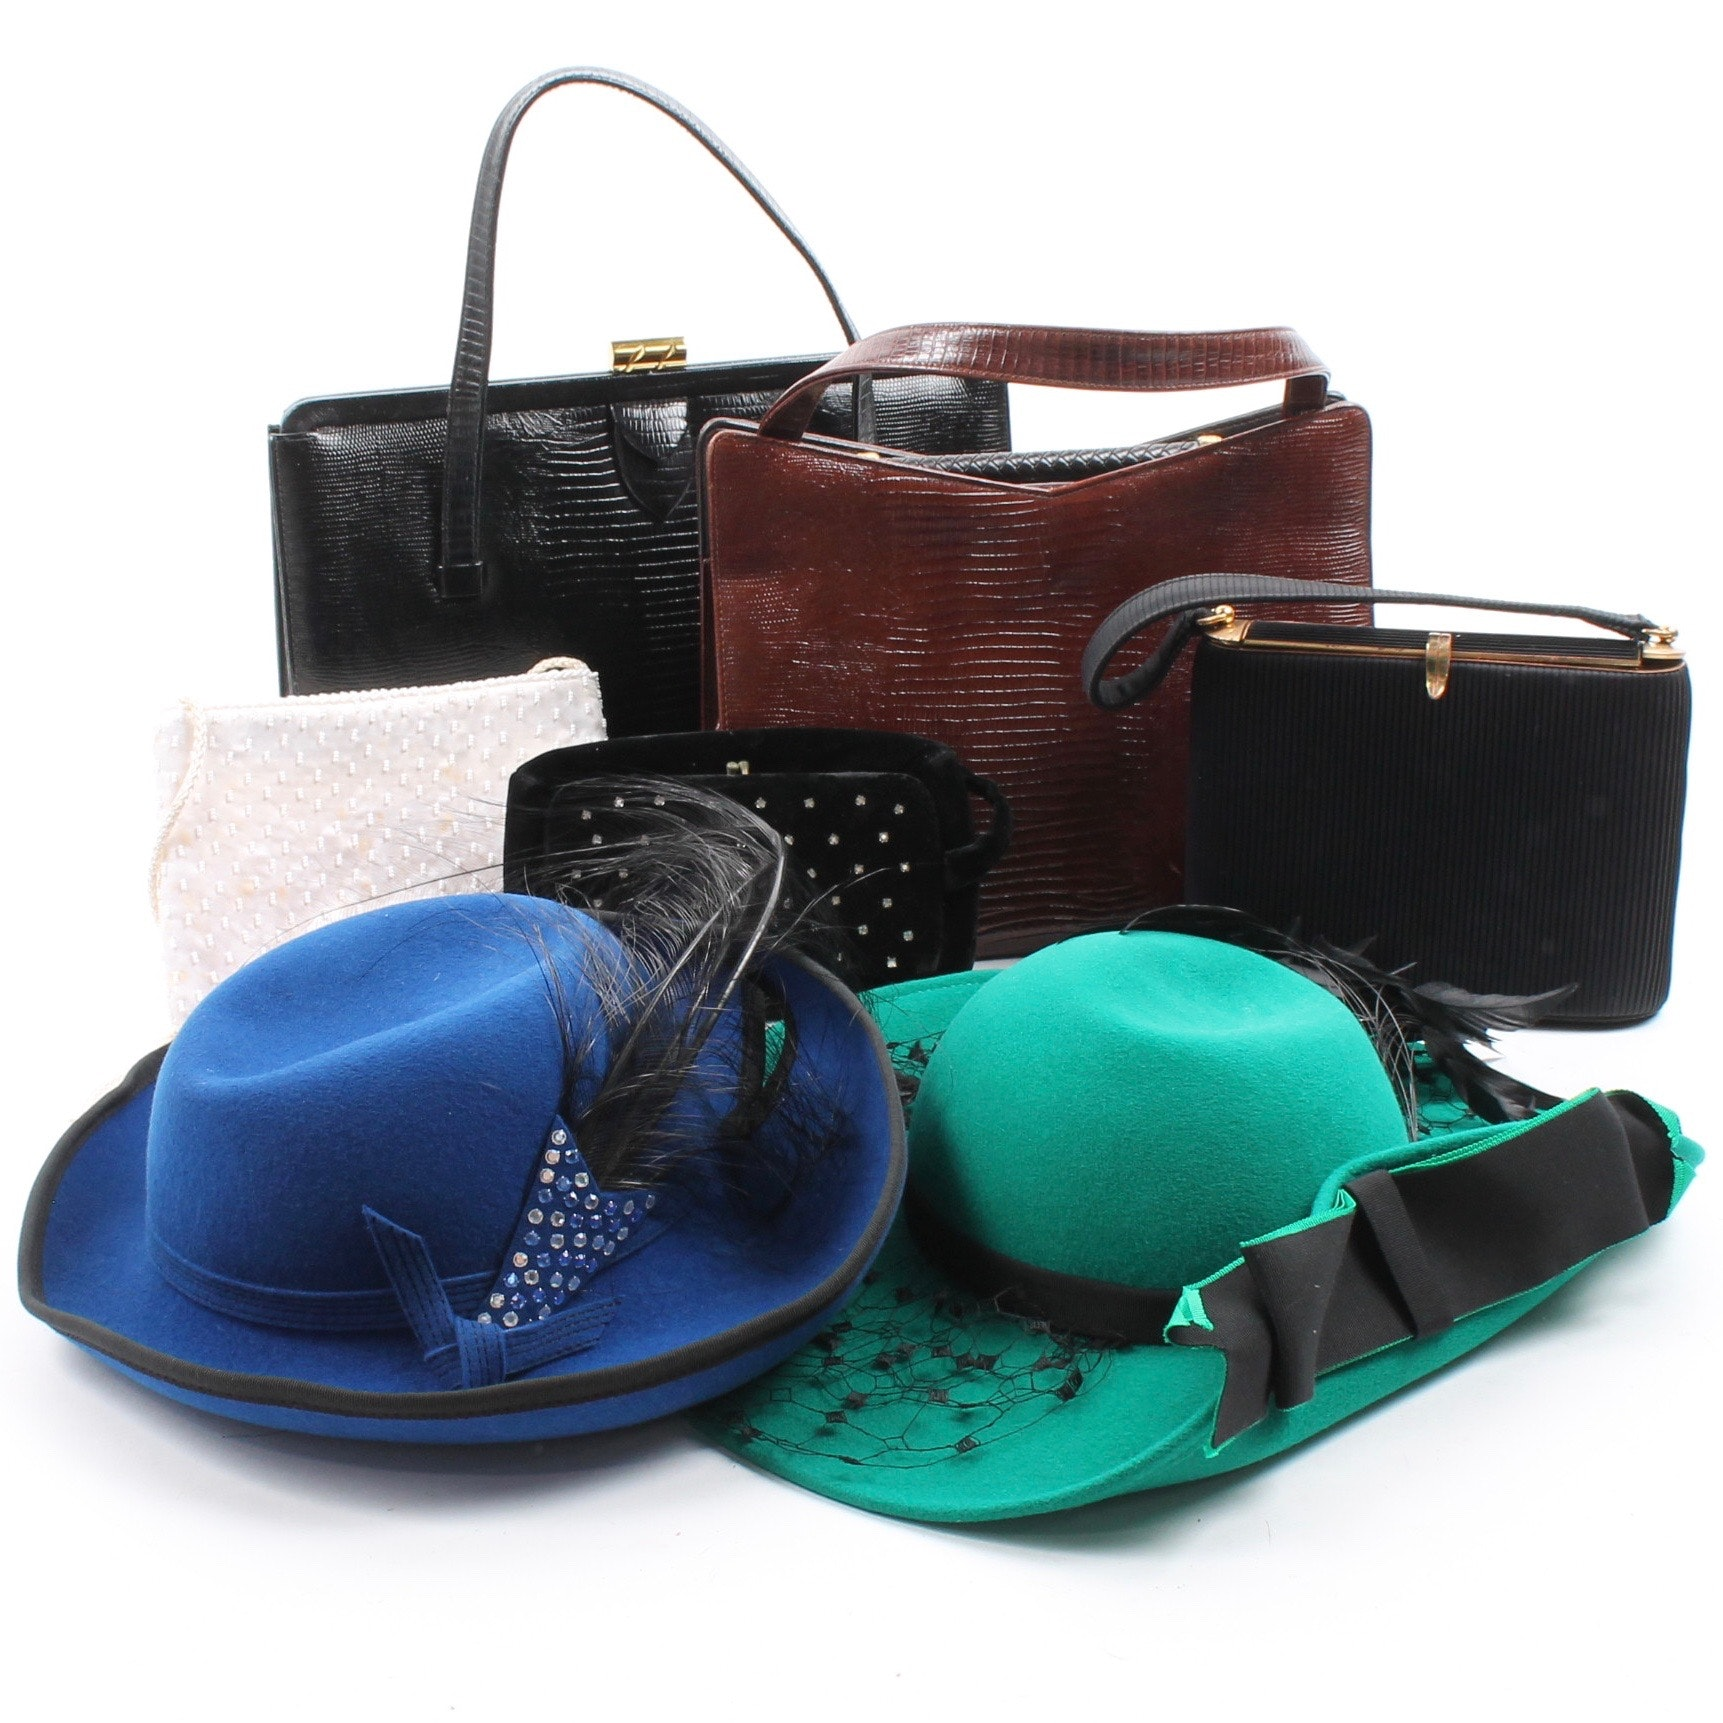 Women's Vintage Felted Hats and Handbags